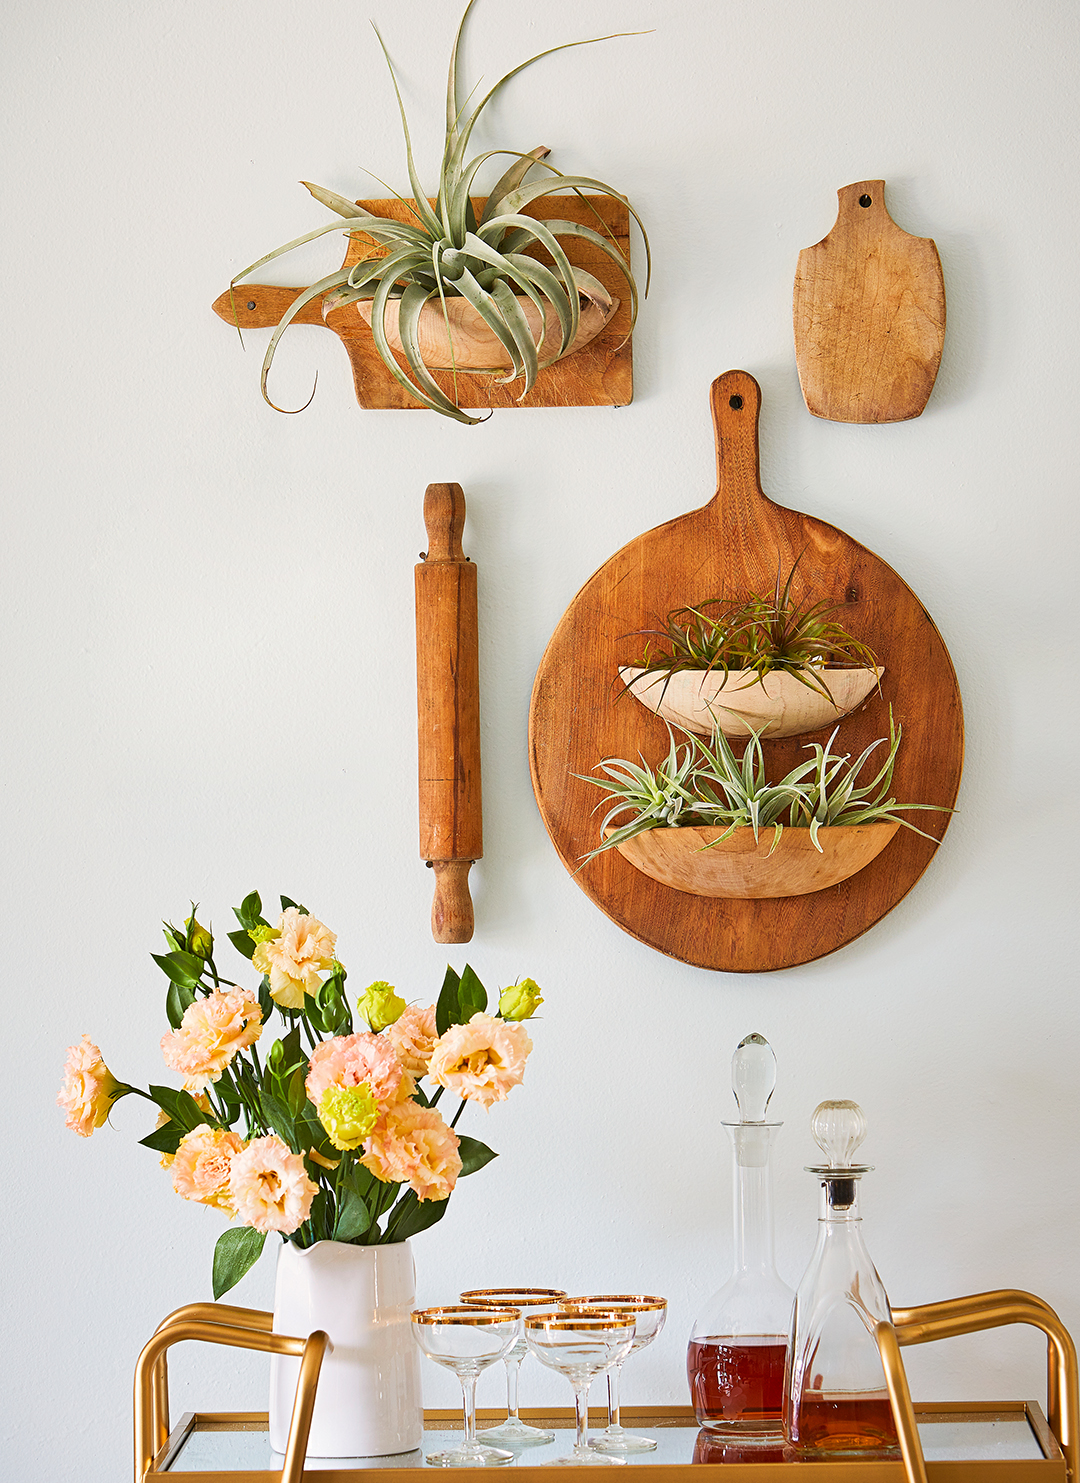 planters made from vintage breadboards above bar cart